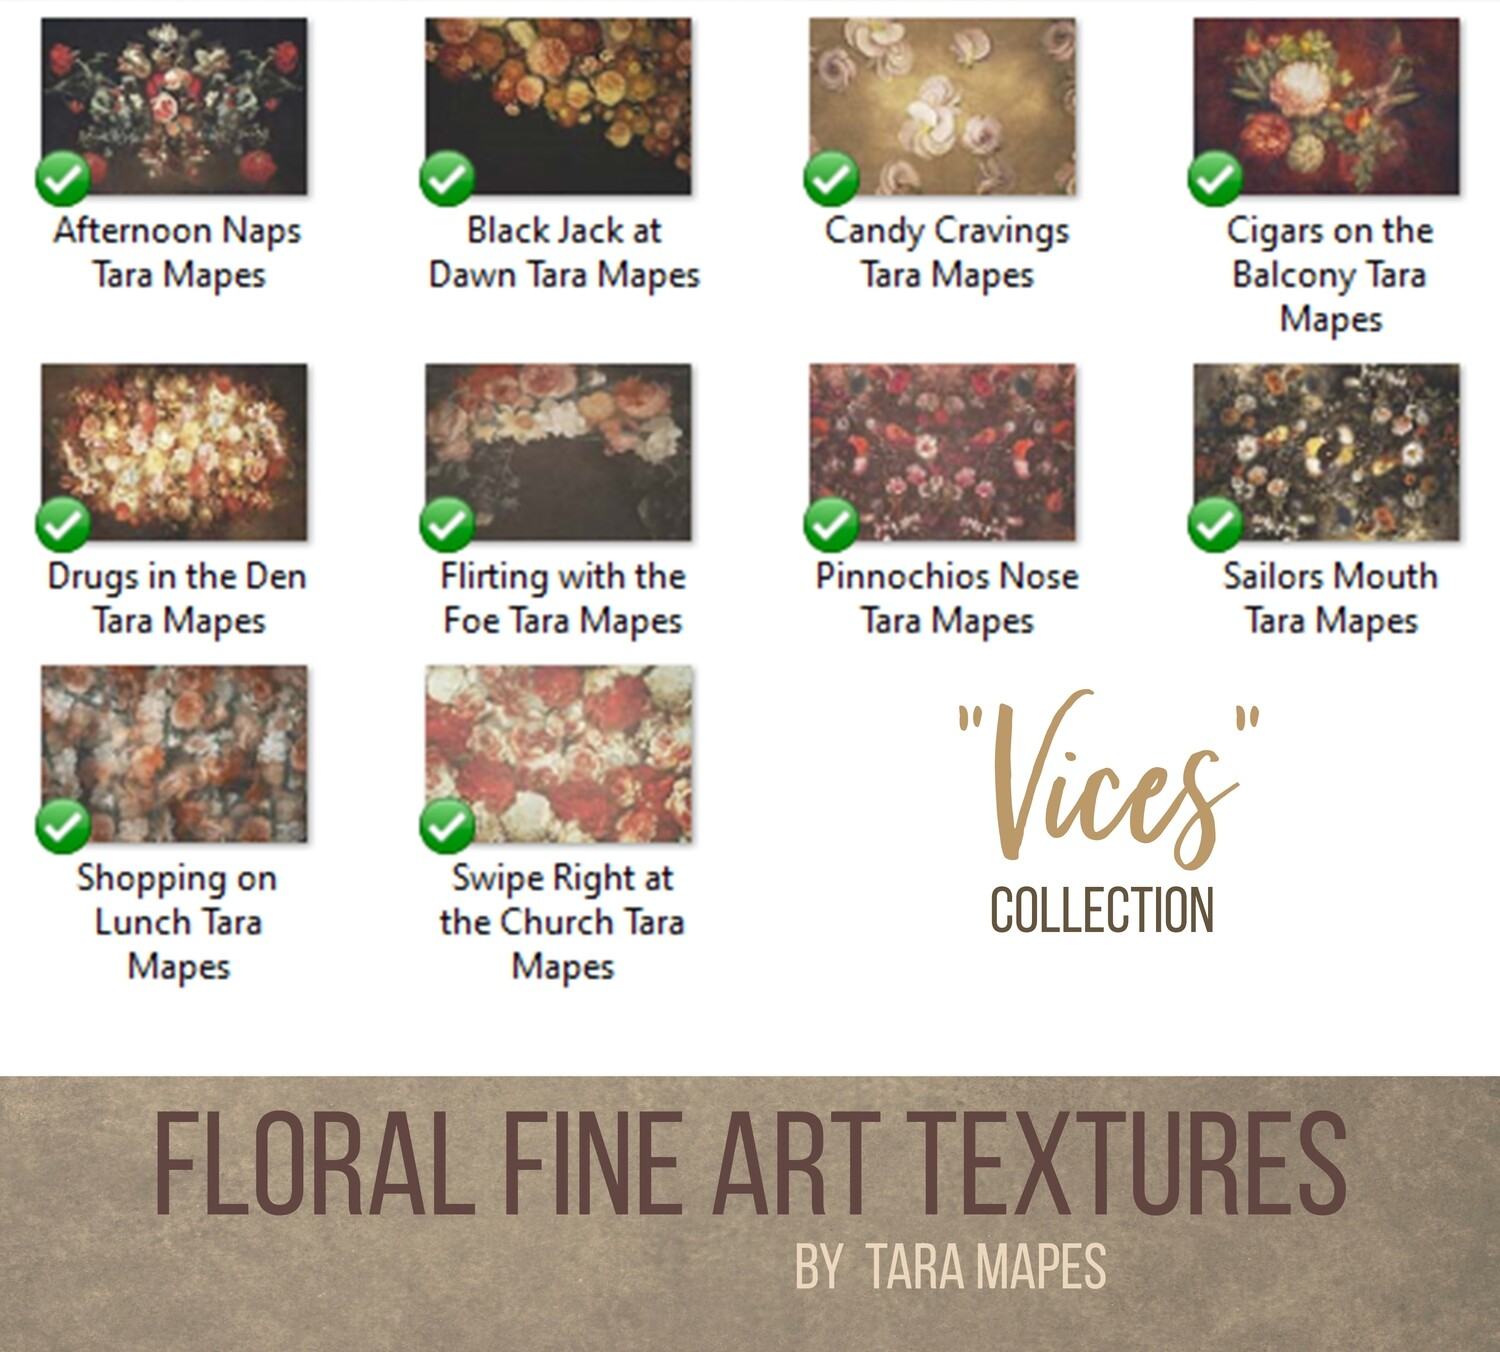 10 Old Masters Floral Textures -Floral Backdrops - Digital Backgrounds - VICES Photoshop Overlays by Tara Mapes